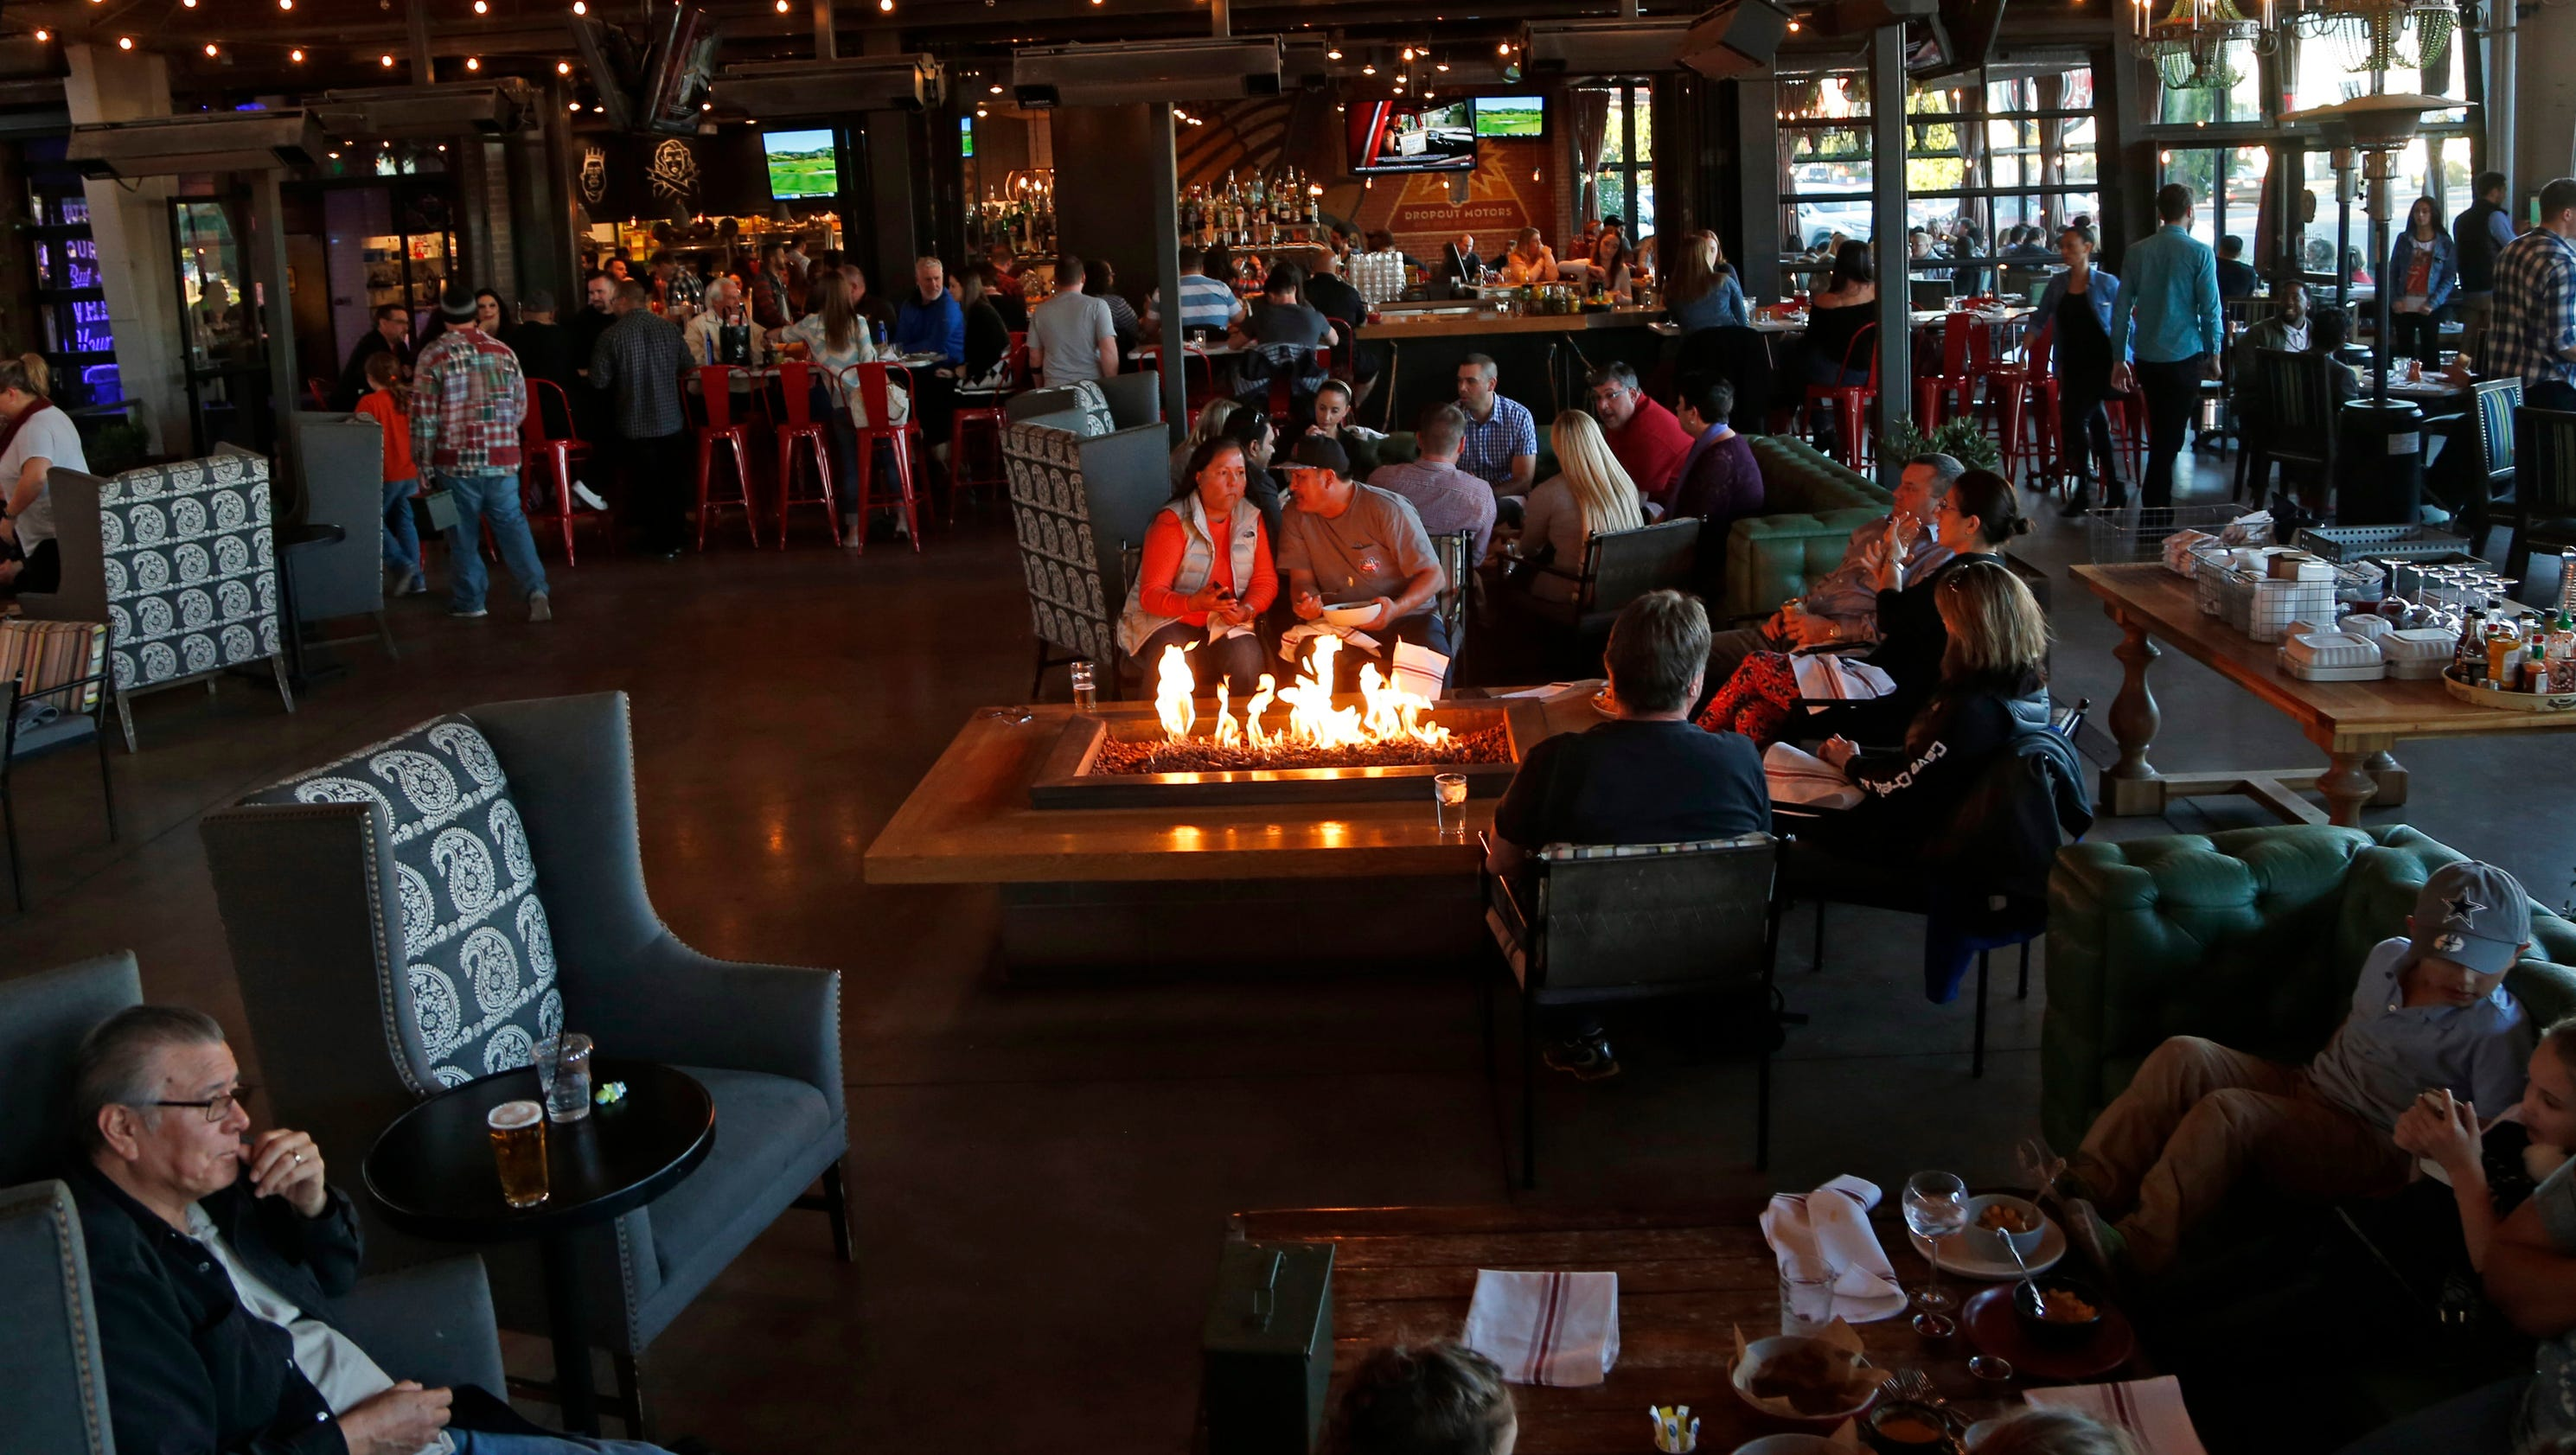 Best new food hubs 7th st restaurants fire up phoenix for Today s interiors phoenix